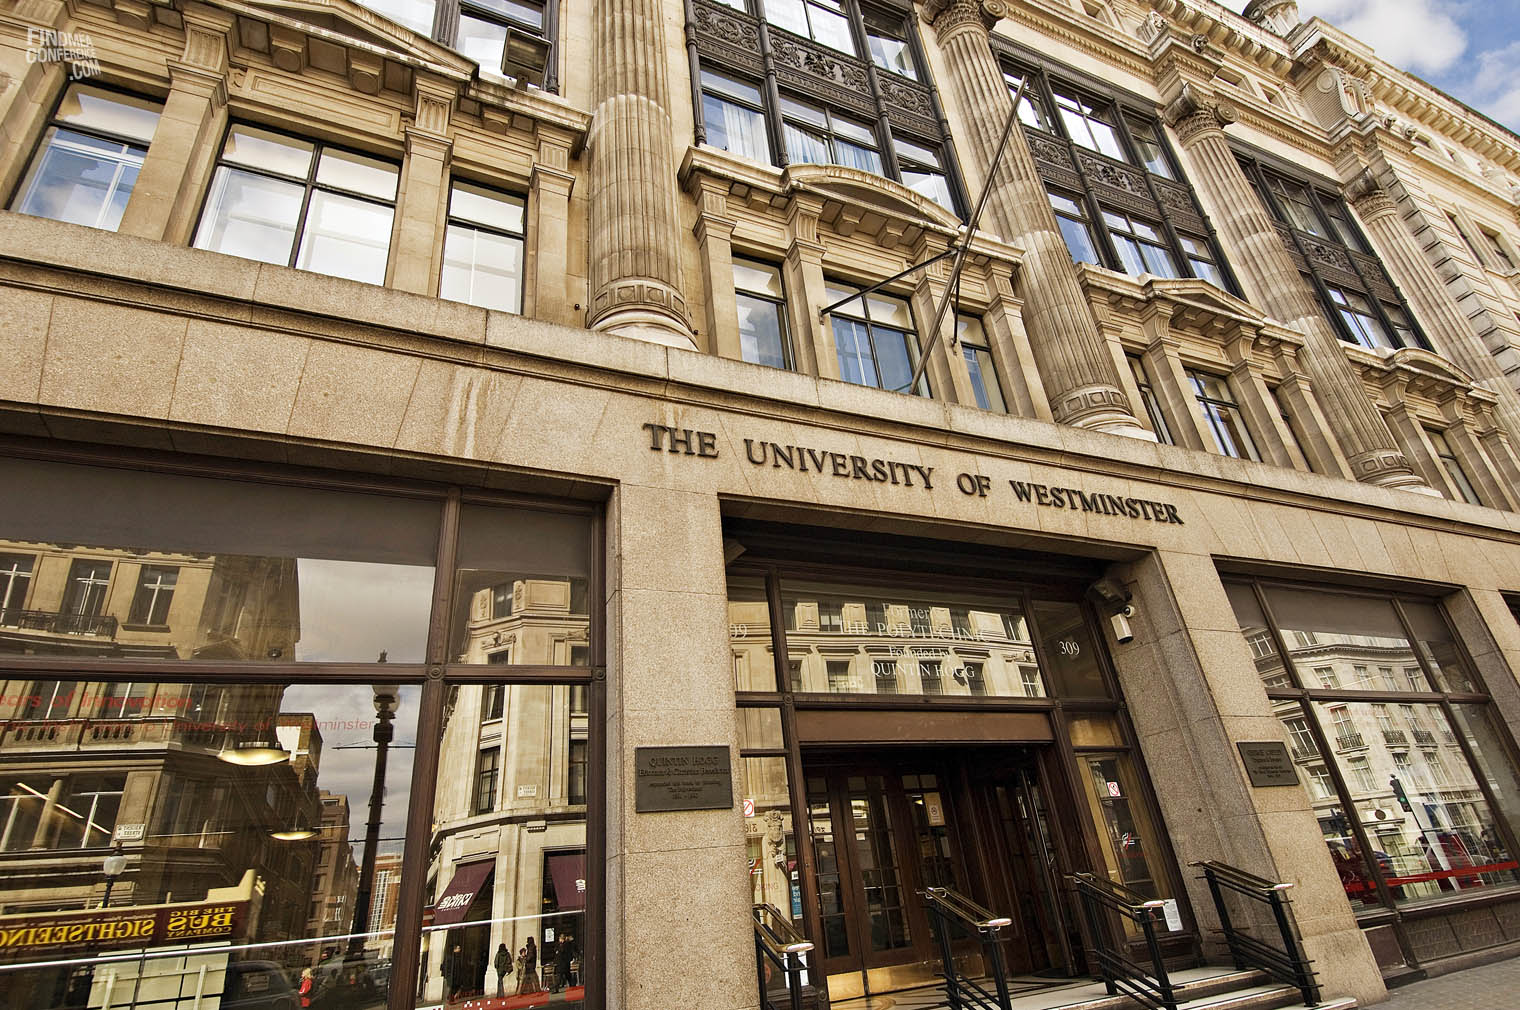 The University of Westminster has appointed Simpson Associates to develop a Student Number Planning Application using IBM Planning Analytics